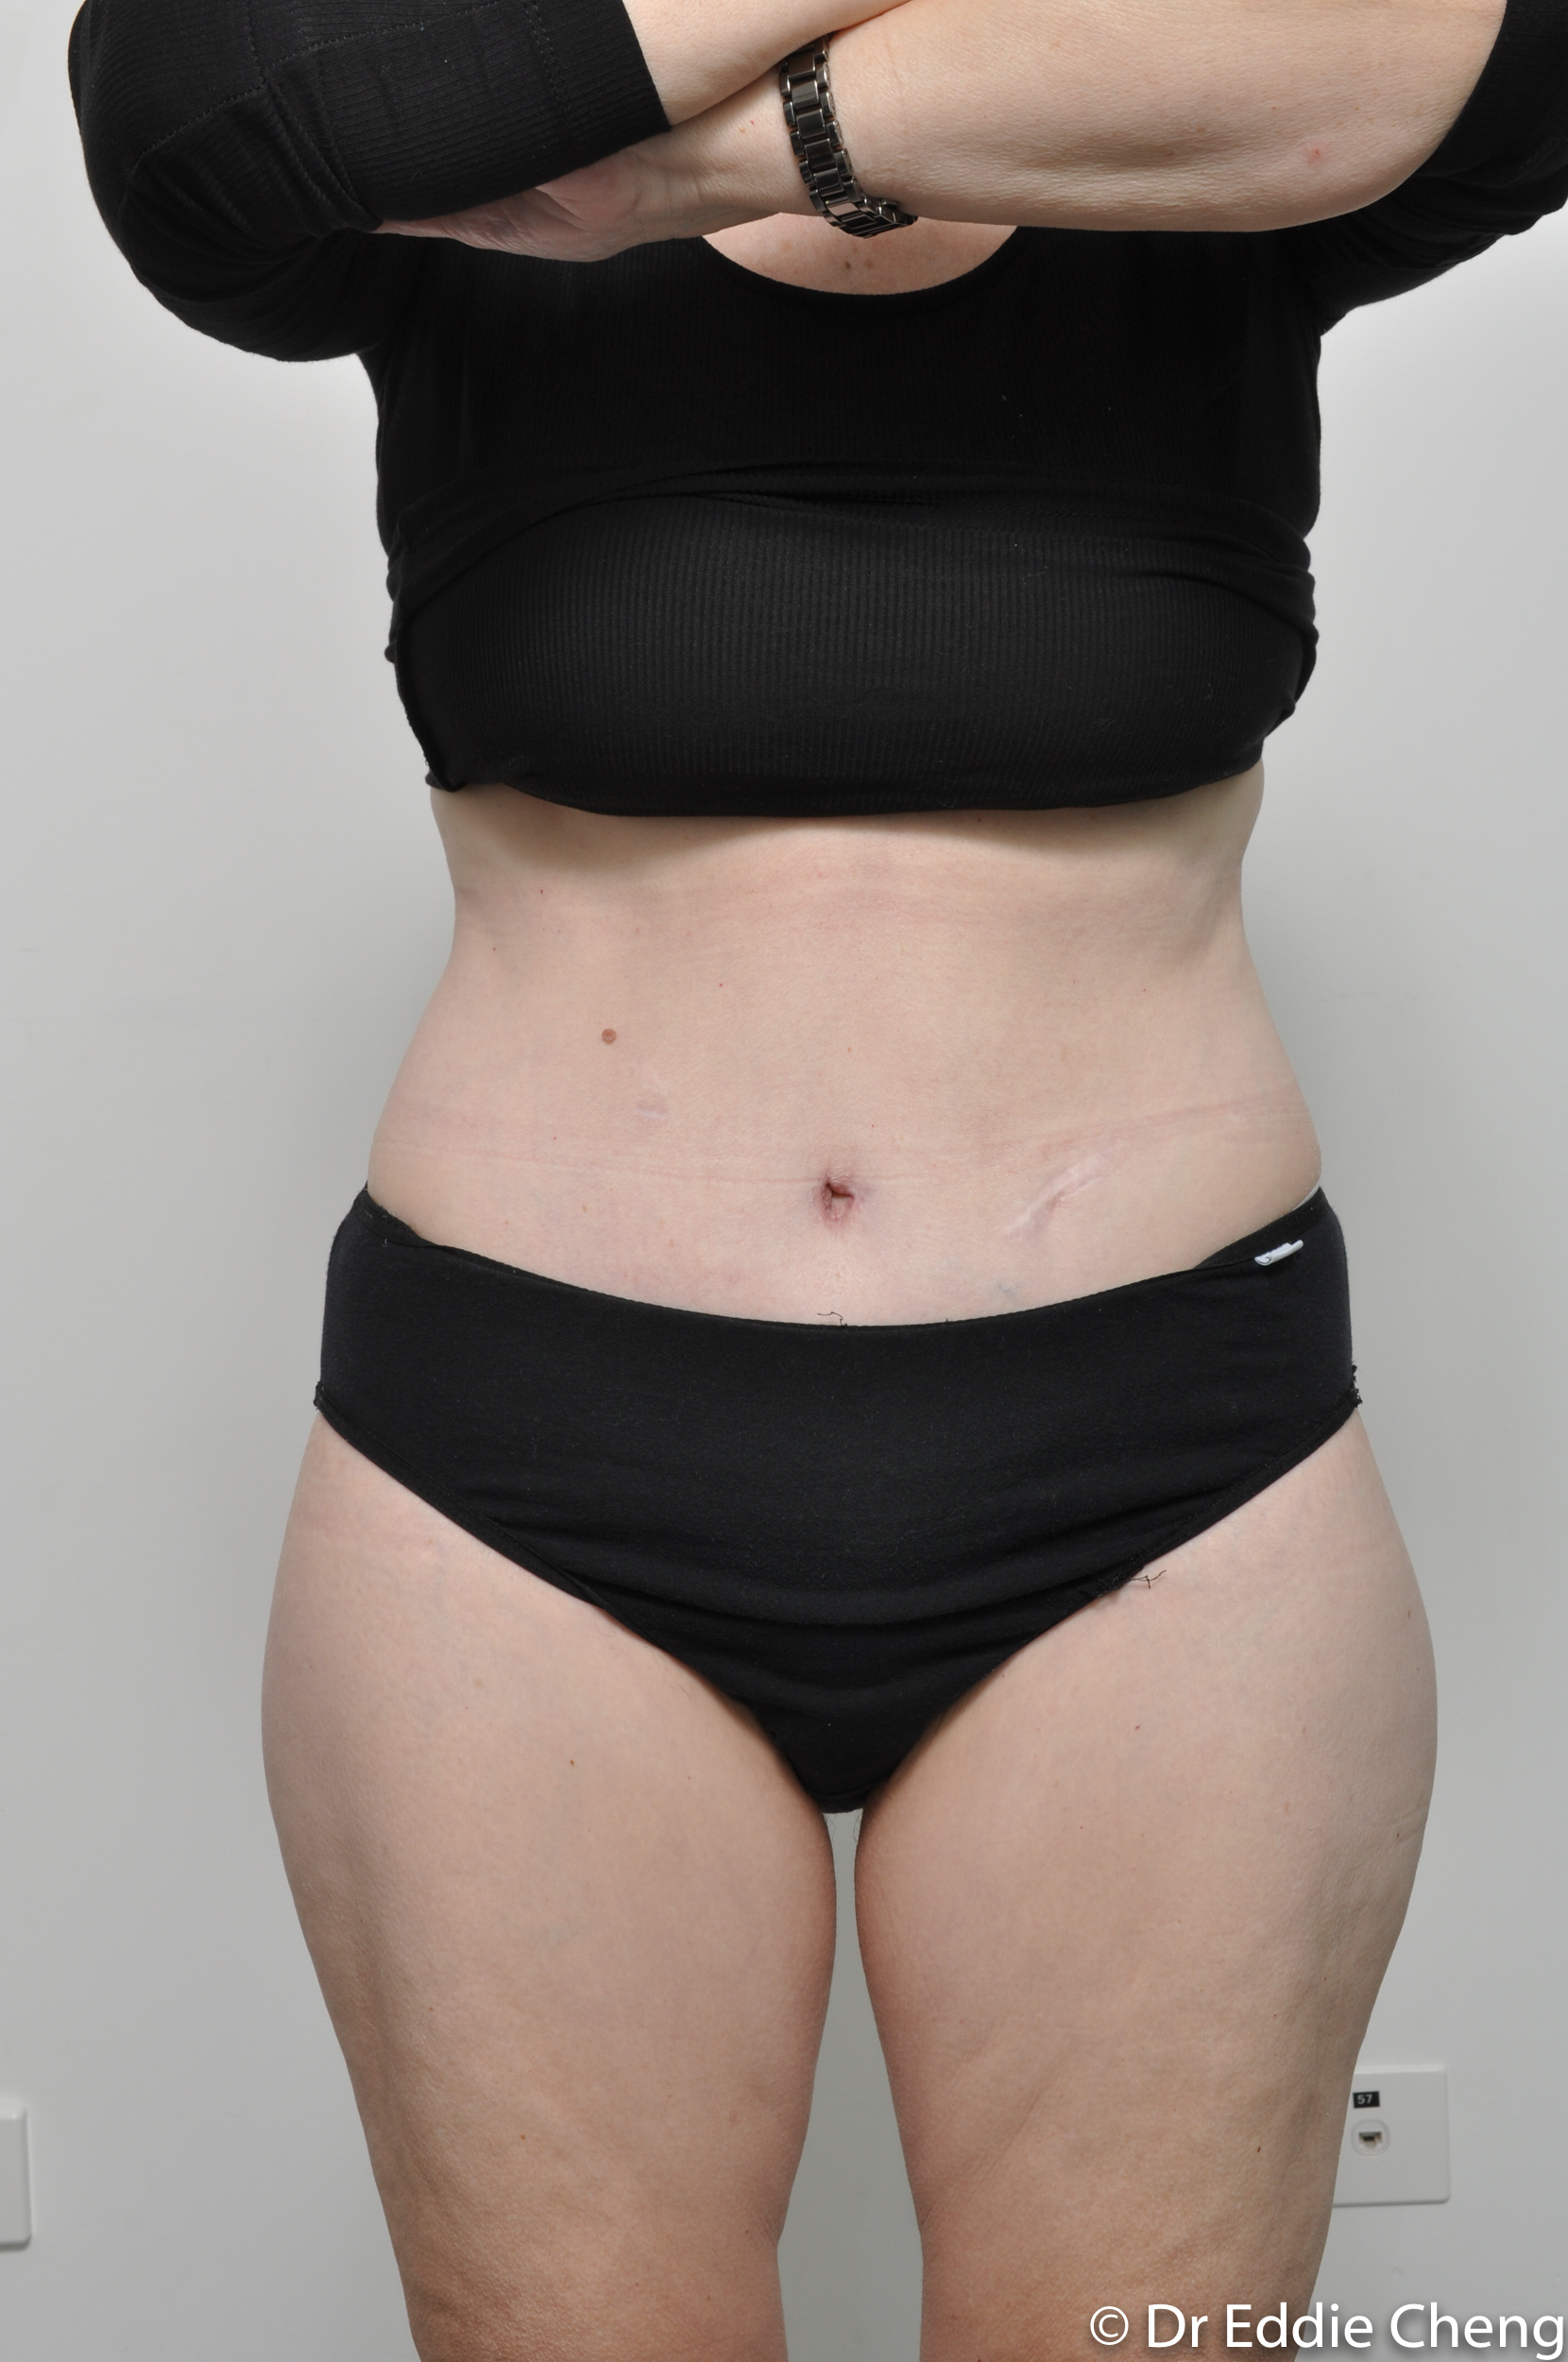 body lift brisbane dr eddie cheng weightloss pre and post op -7